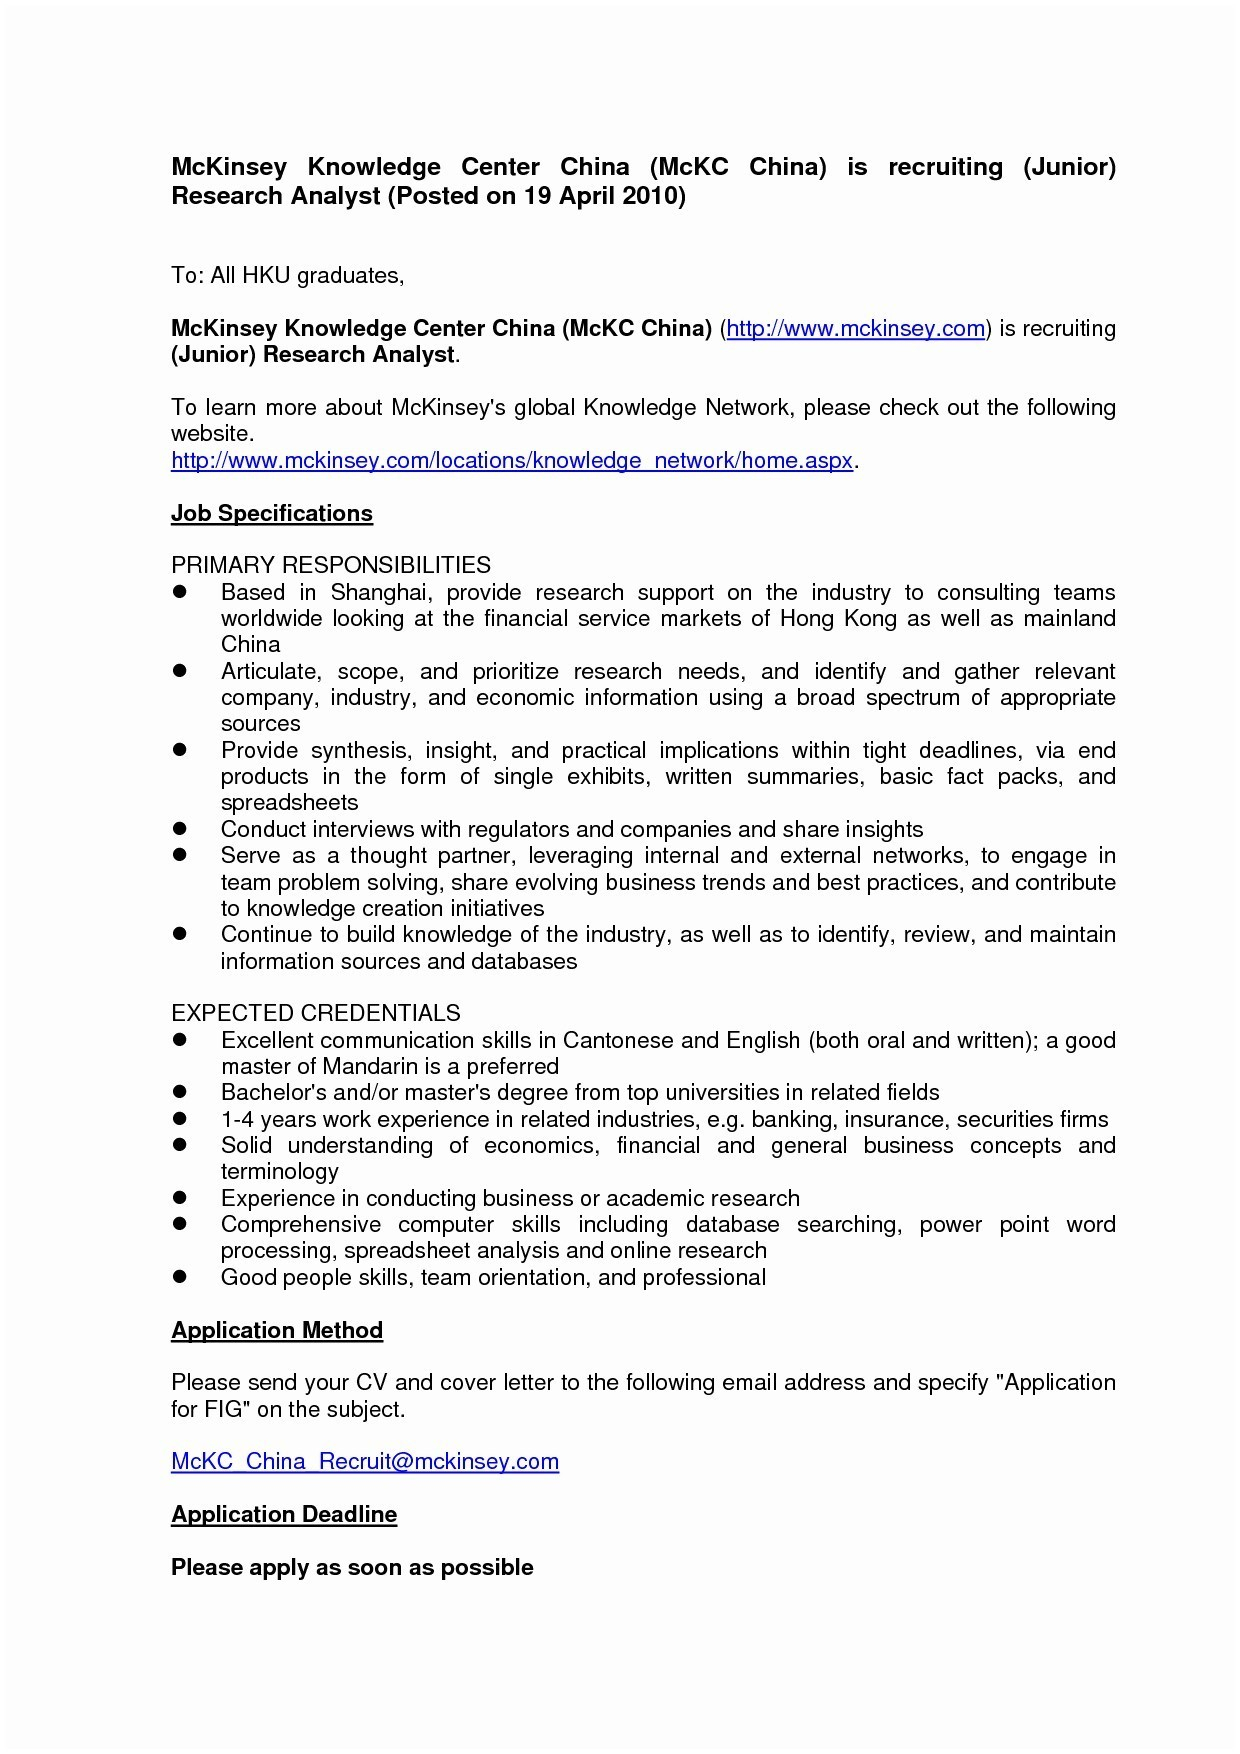 Letter Of Intent Email Template - Letter Intent for Job Opening New Job Fer Letter Template Us Copy